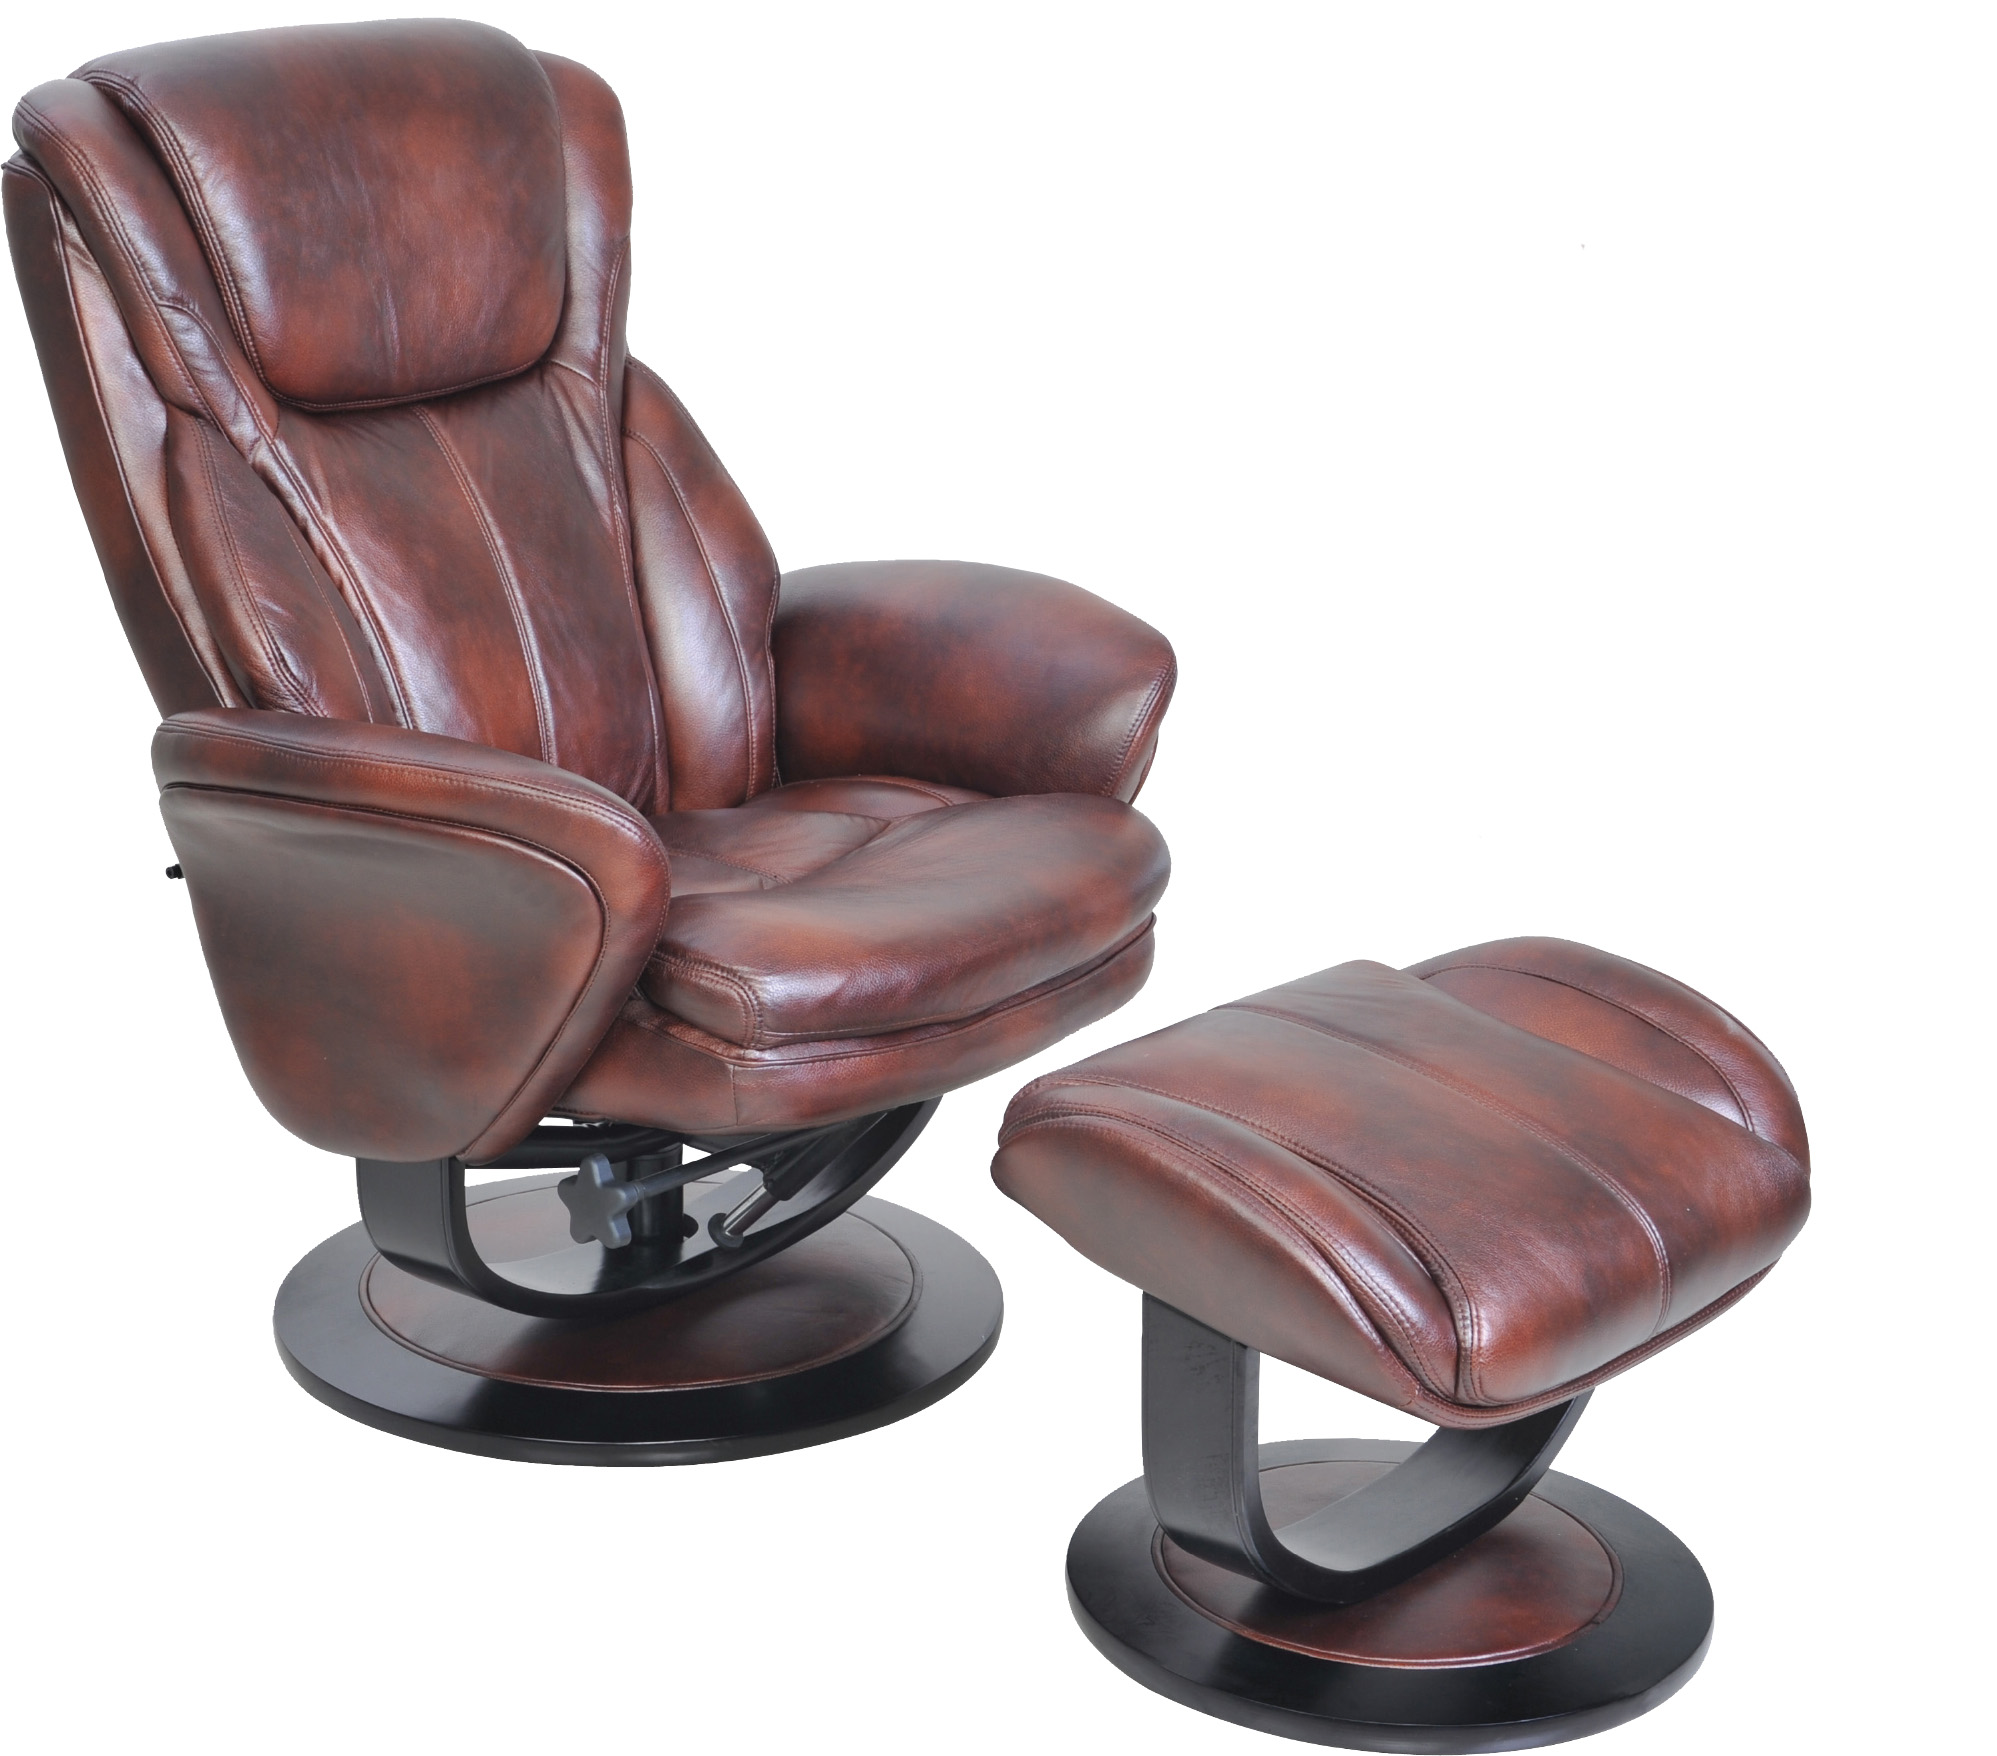 Barcalounger Roma II Recliner Chair And Ottoman